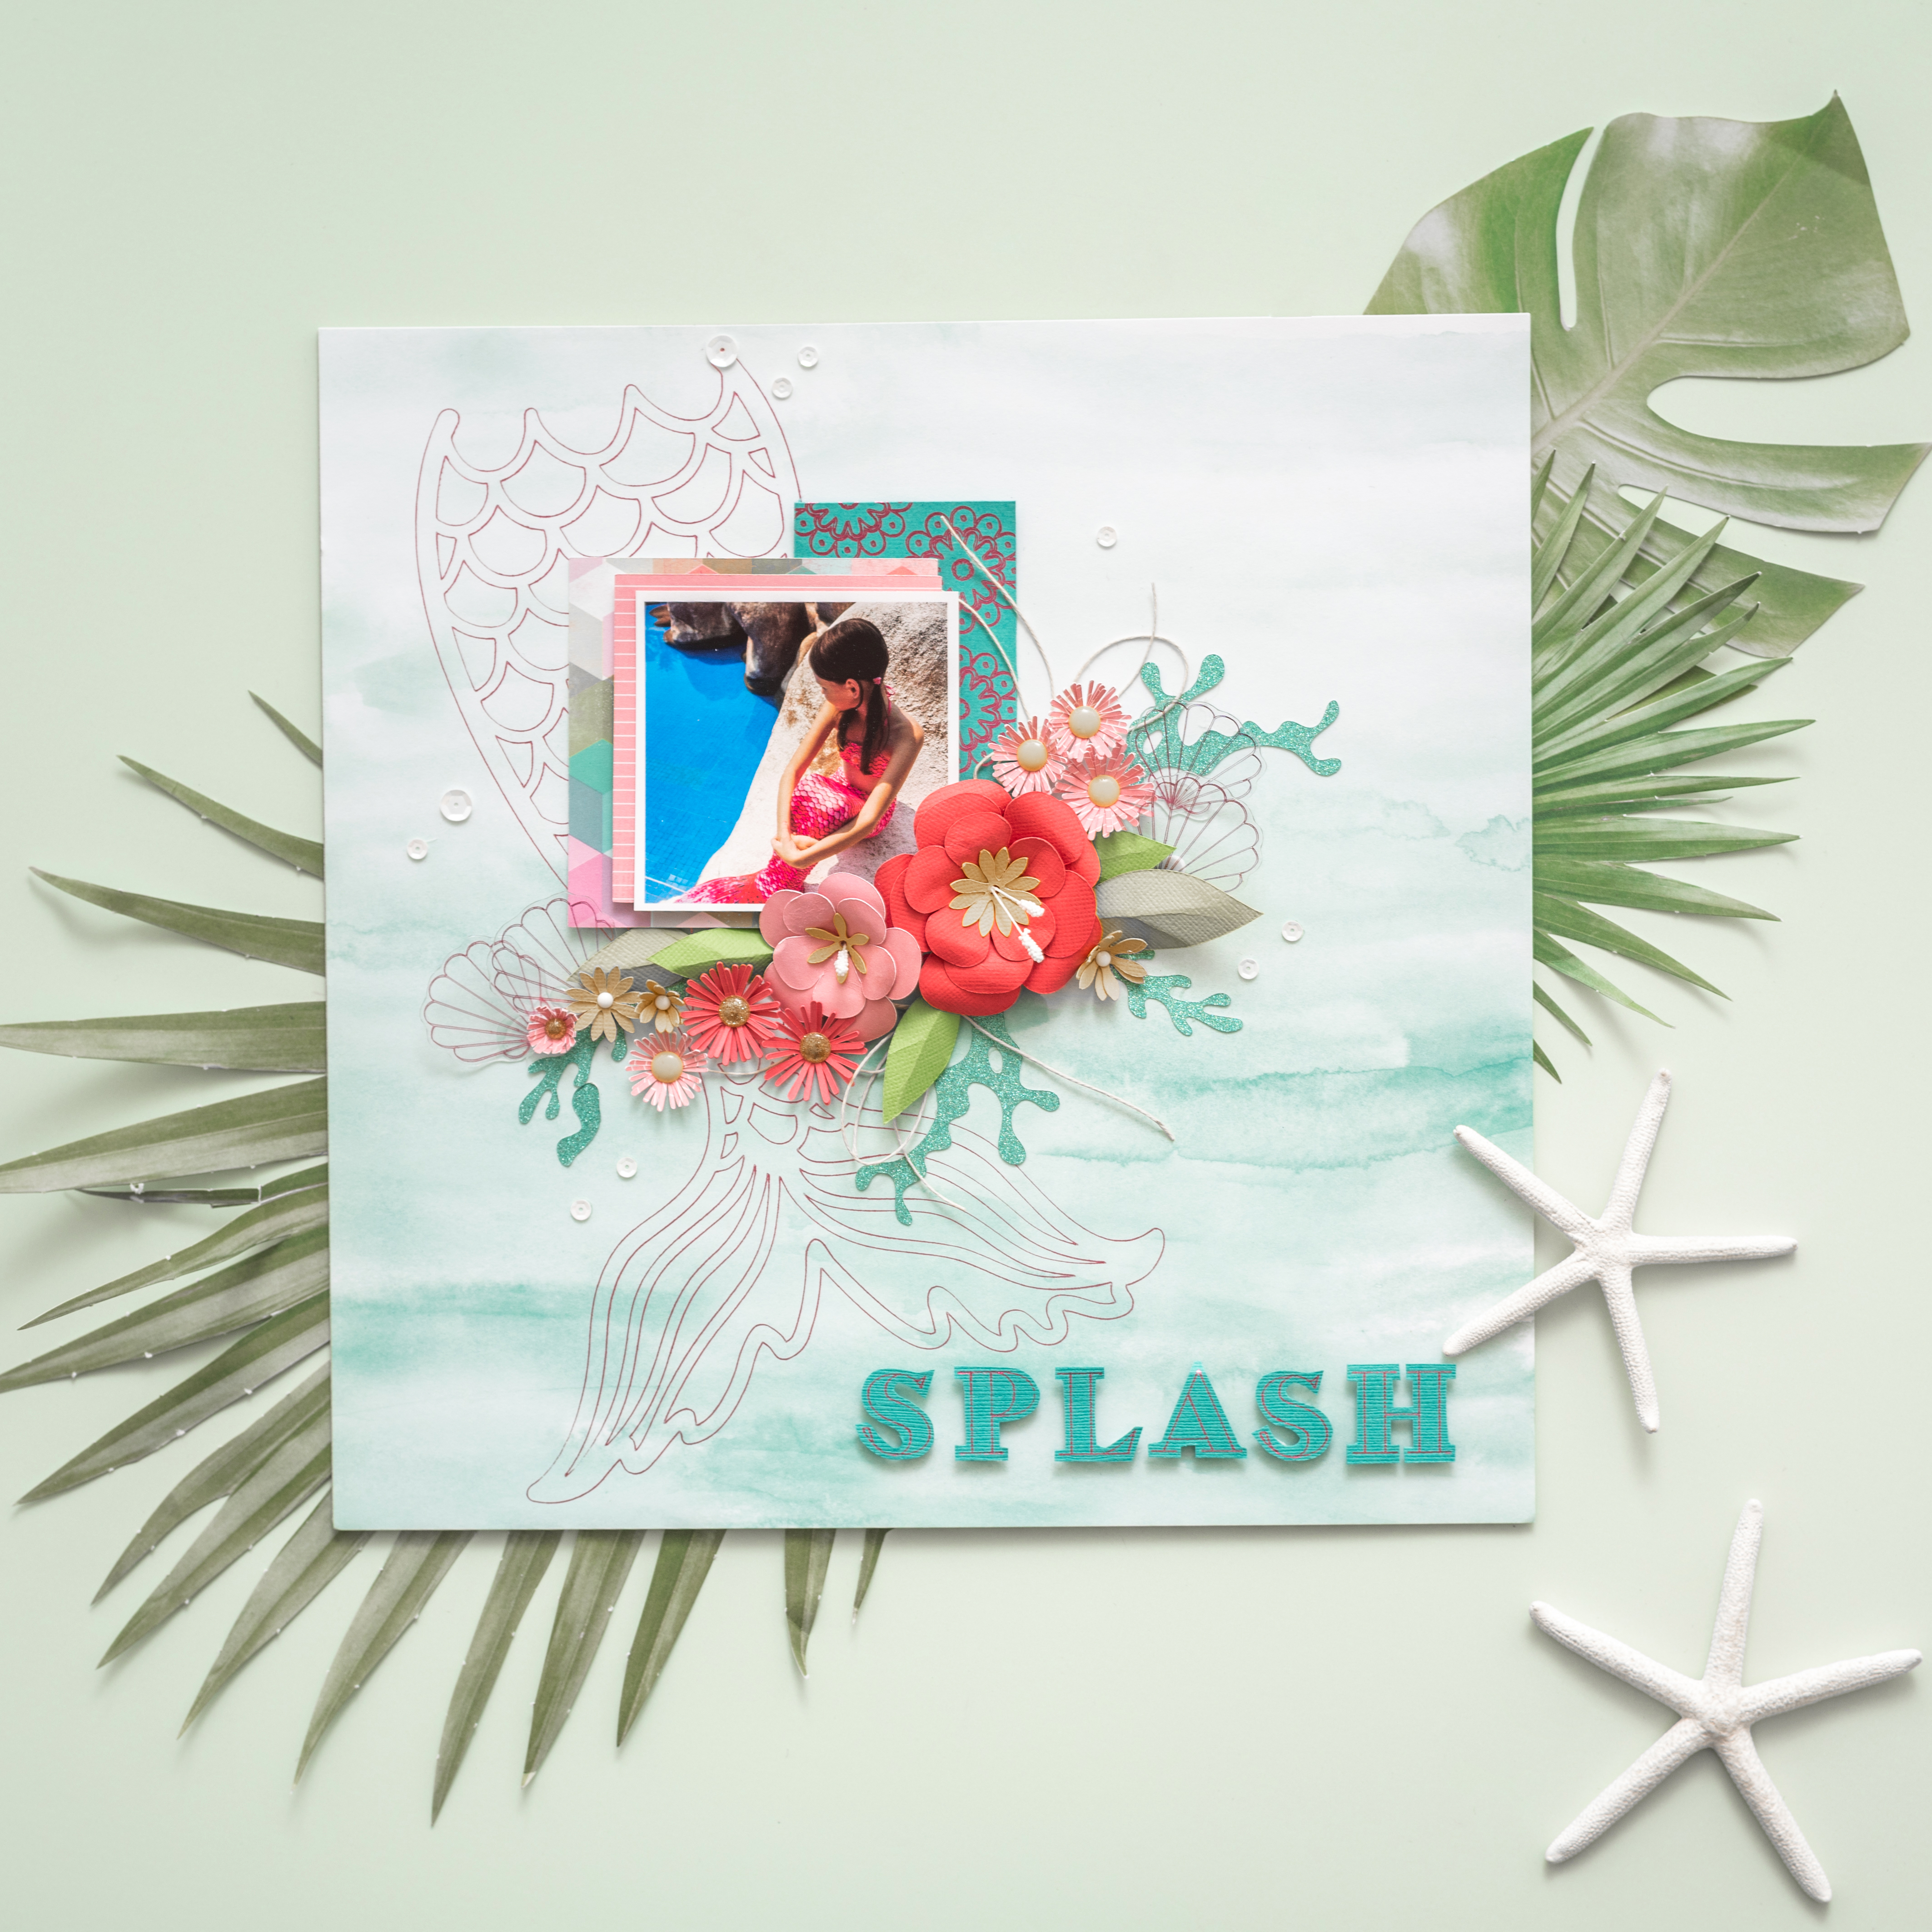 Foiled Mermaid Scrapbook Page by We R Memory Keepers featuring the Foil Quill